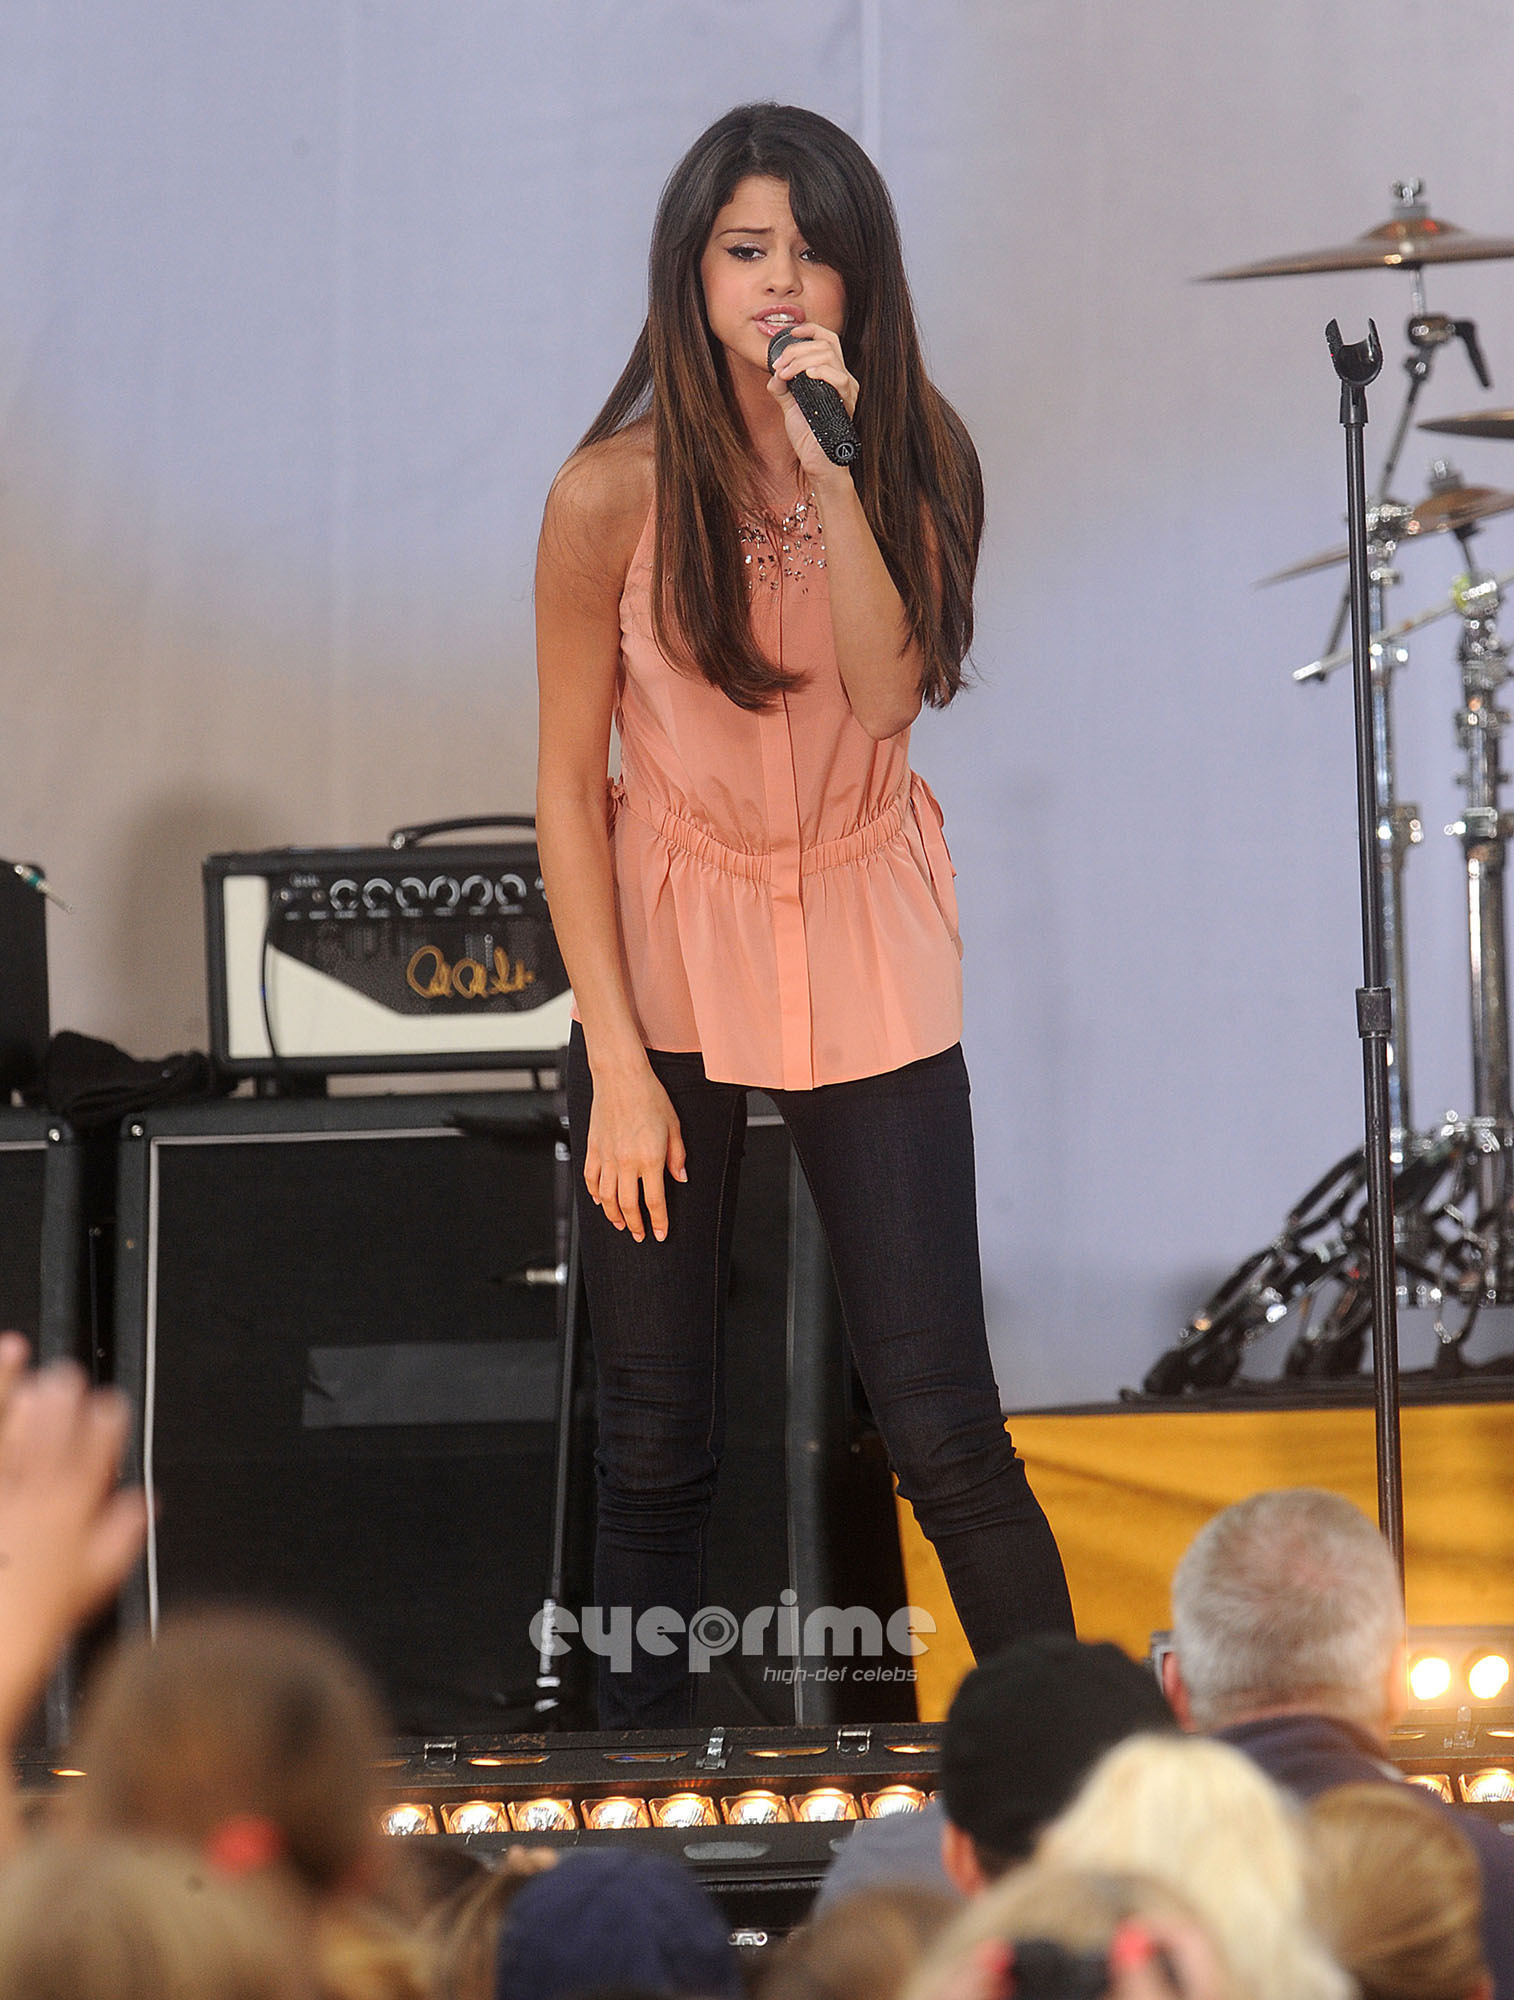 Selena Gomez performs at Good Morning America in NY, Jun 17